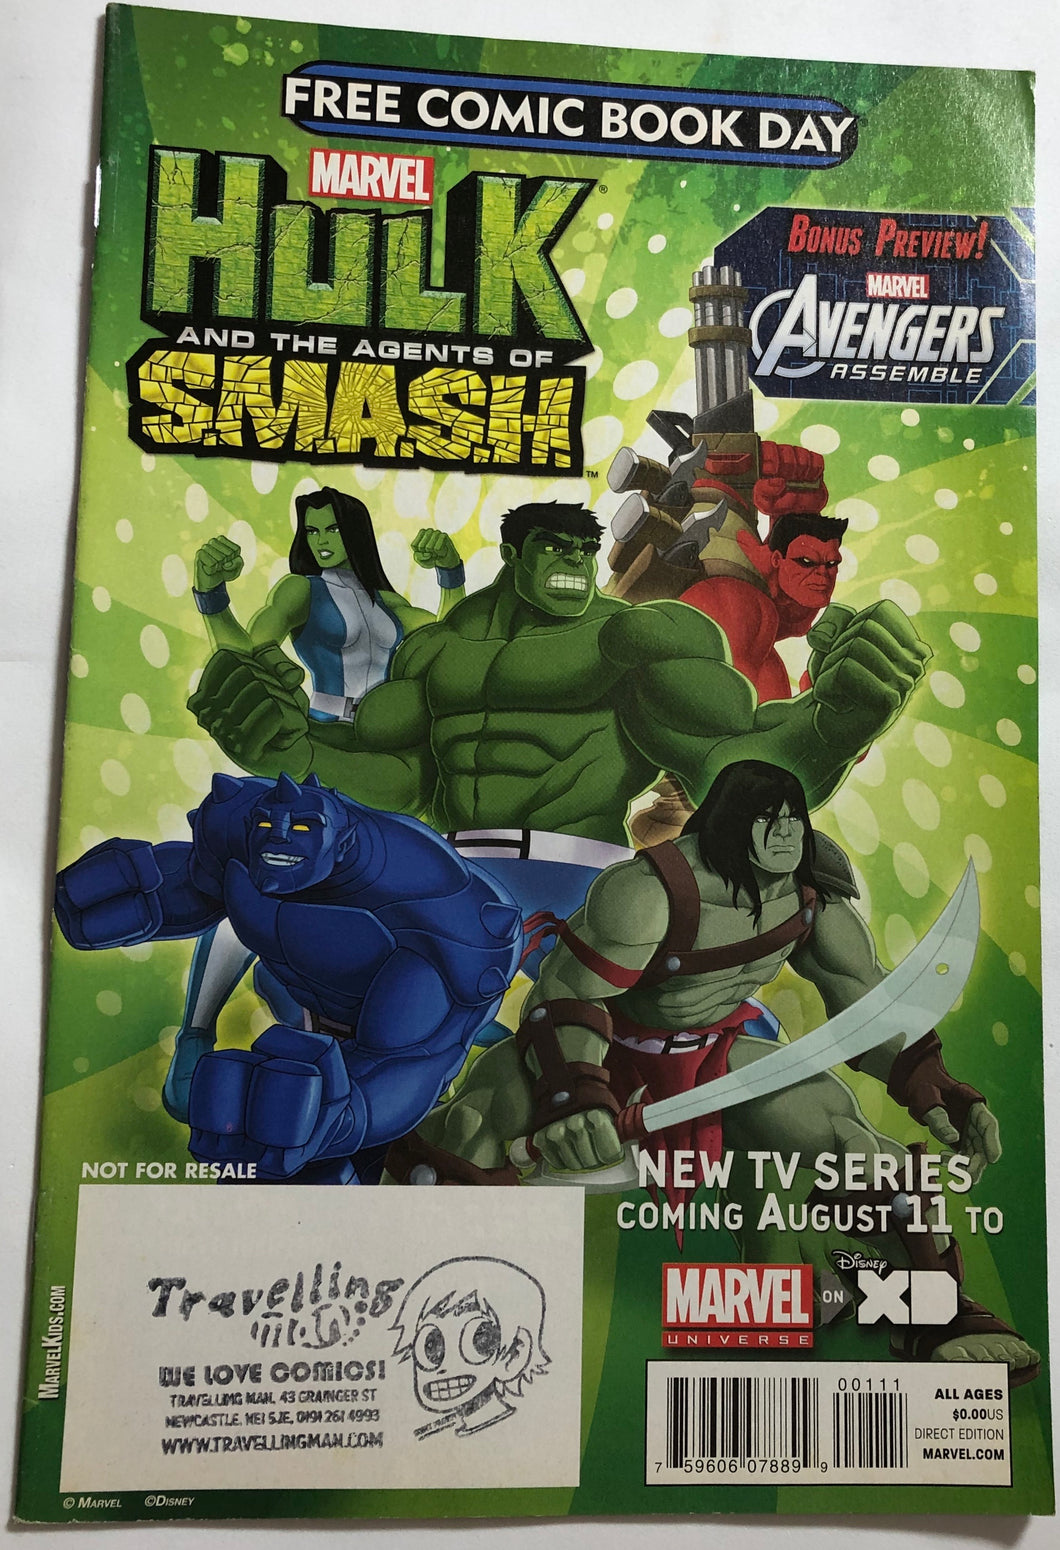 Hulk And The Agents Of S.M.A.S.H - Demize Collectibles LTD